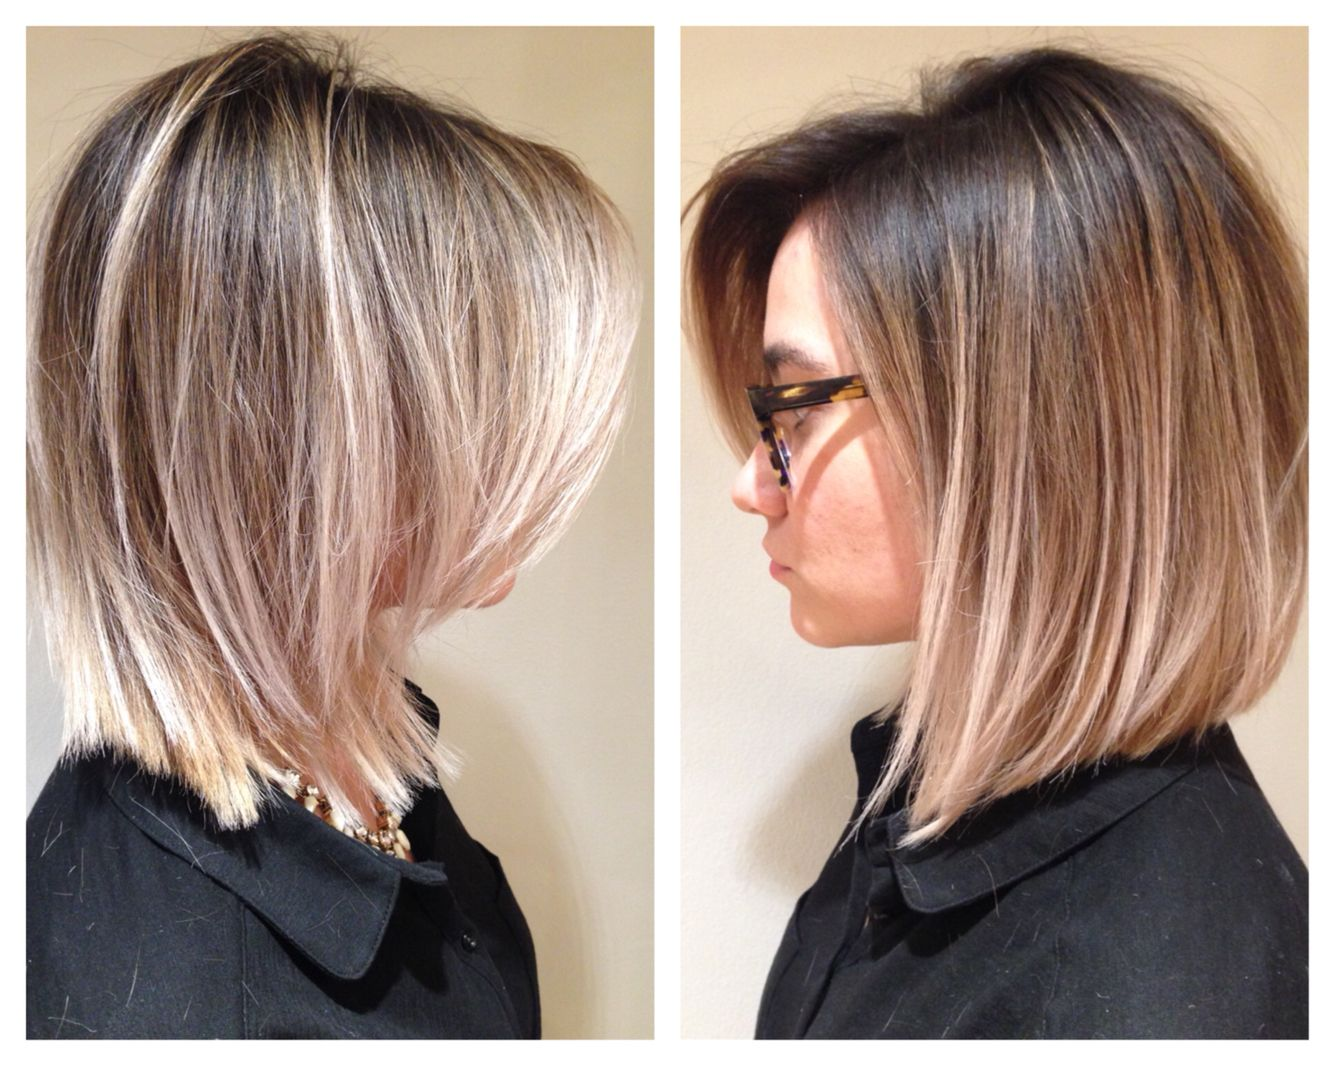 Ombré Hair Balayage Hair Painting Long Bob Blonde By Natalie Ruzgis